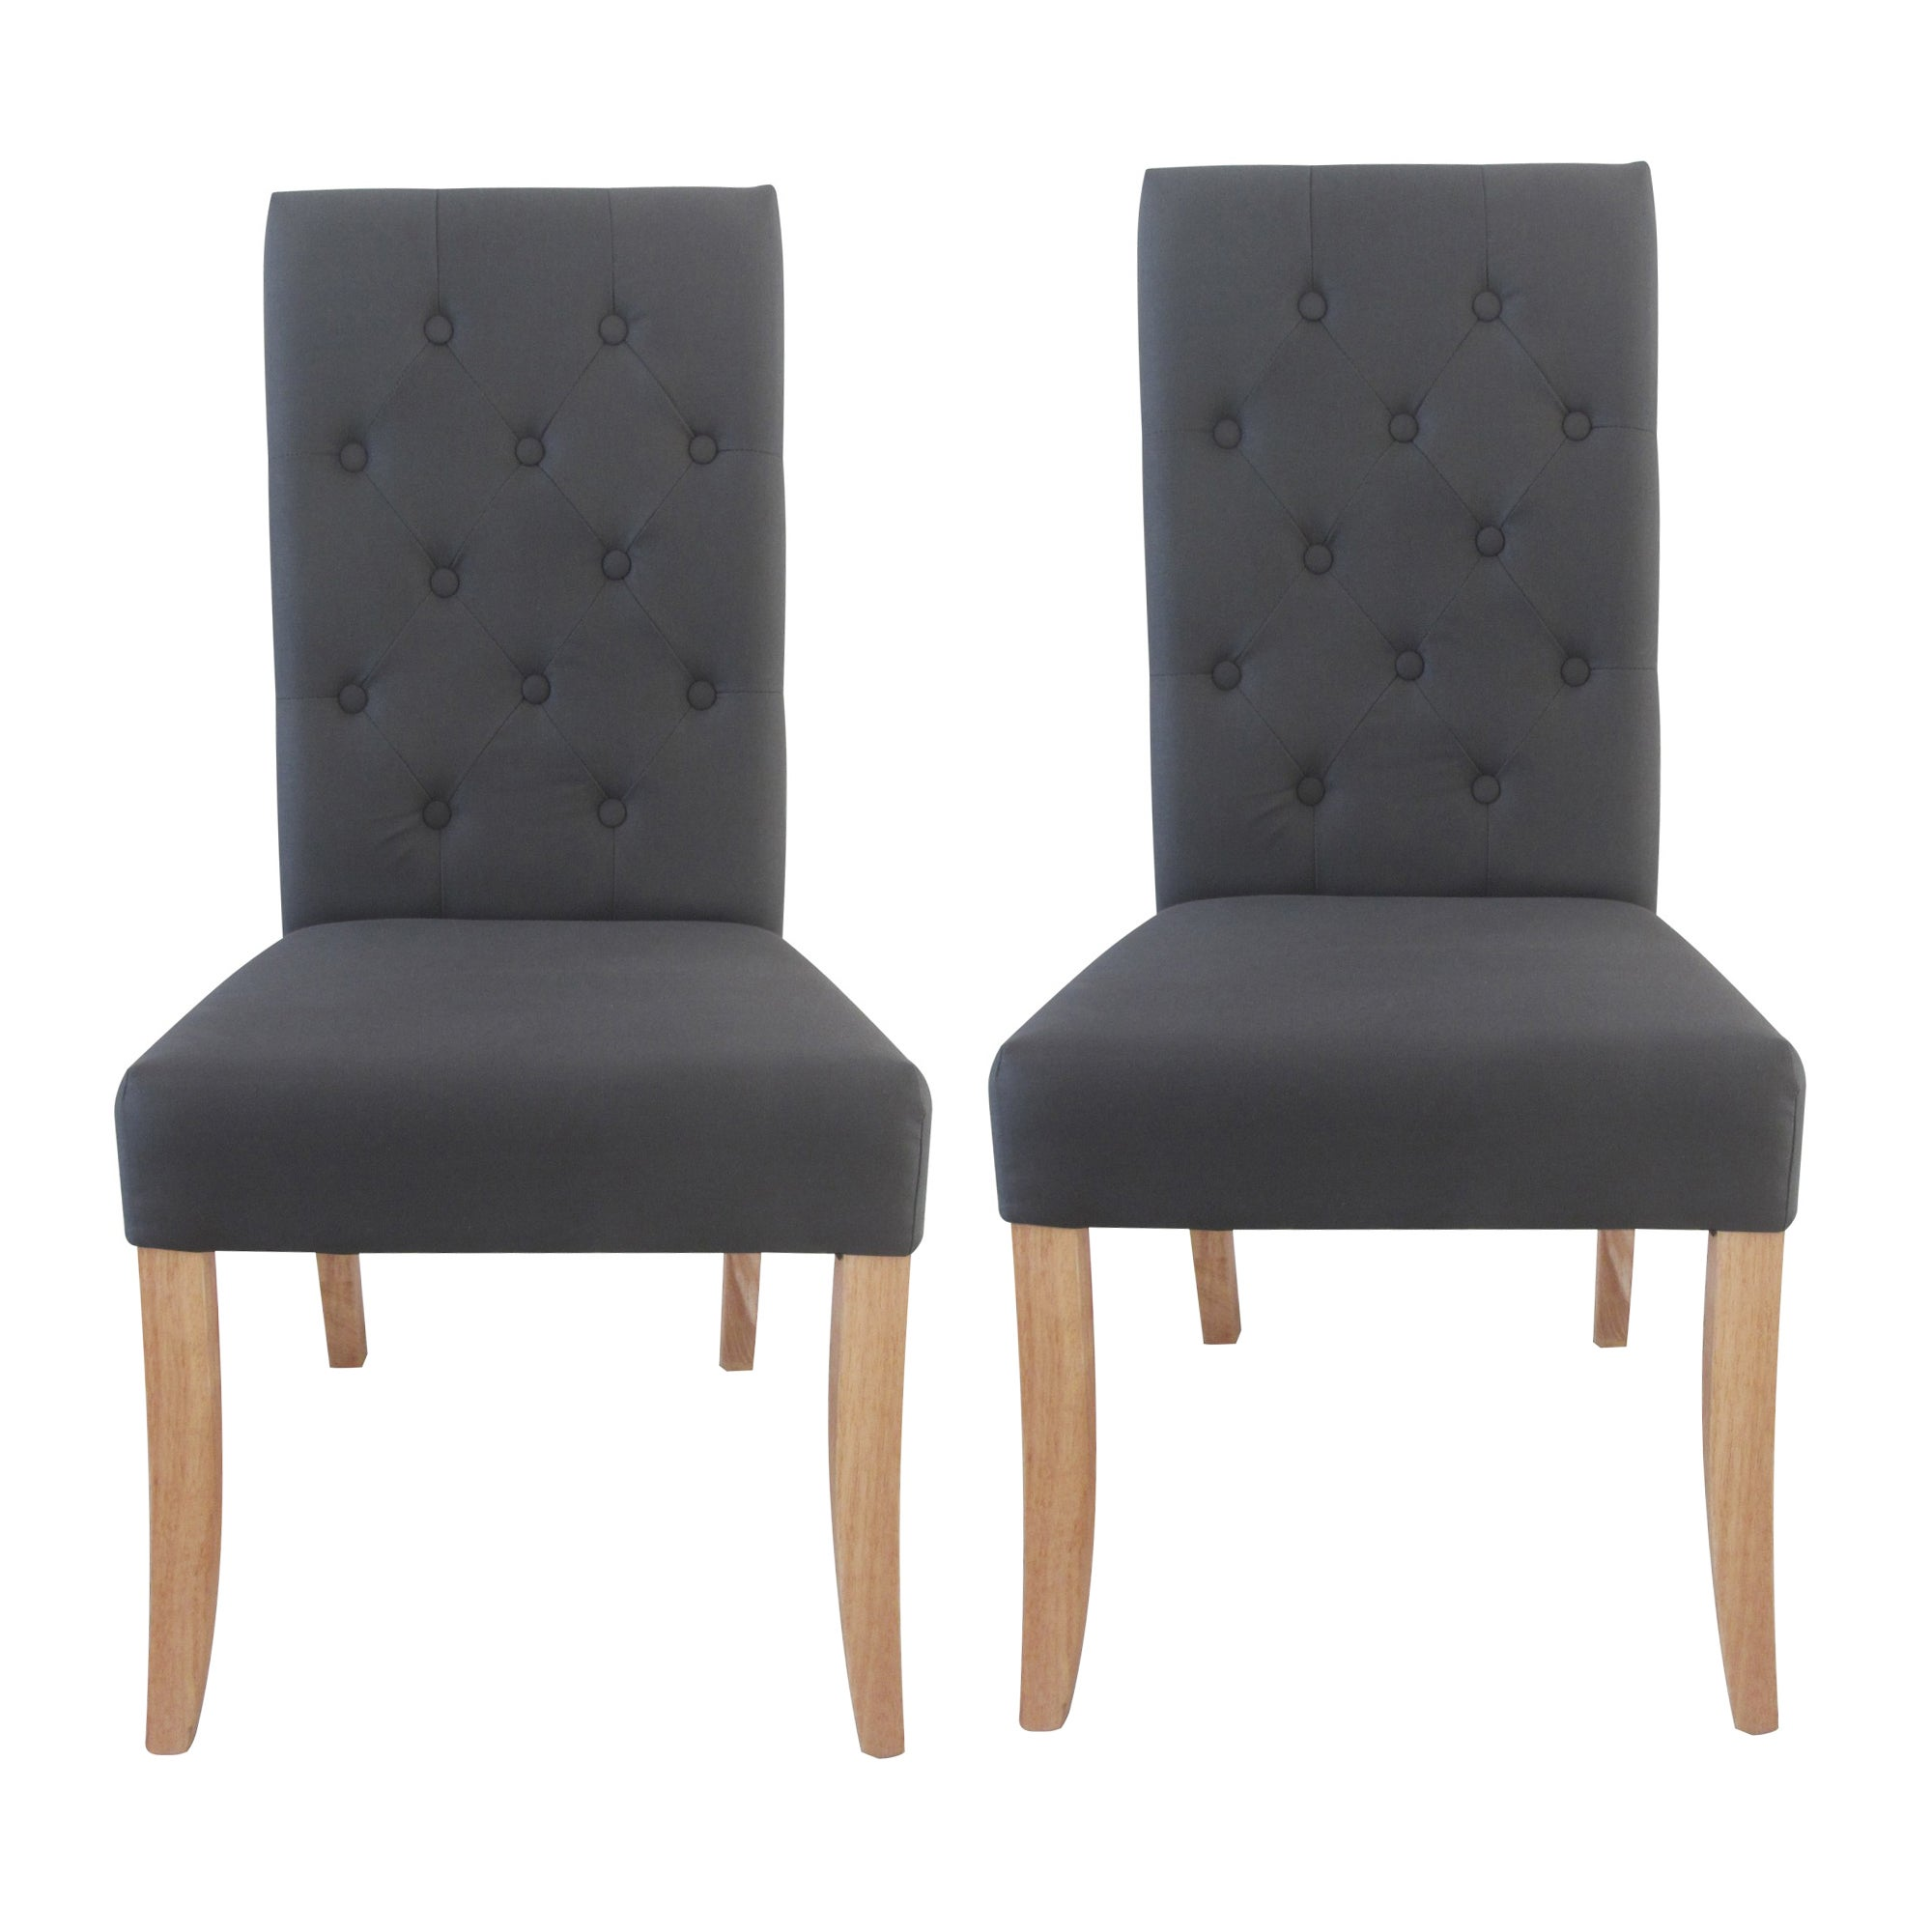 Antoinette Charcoal Pair of Dining Chairs